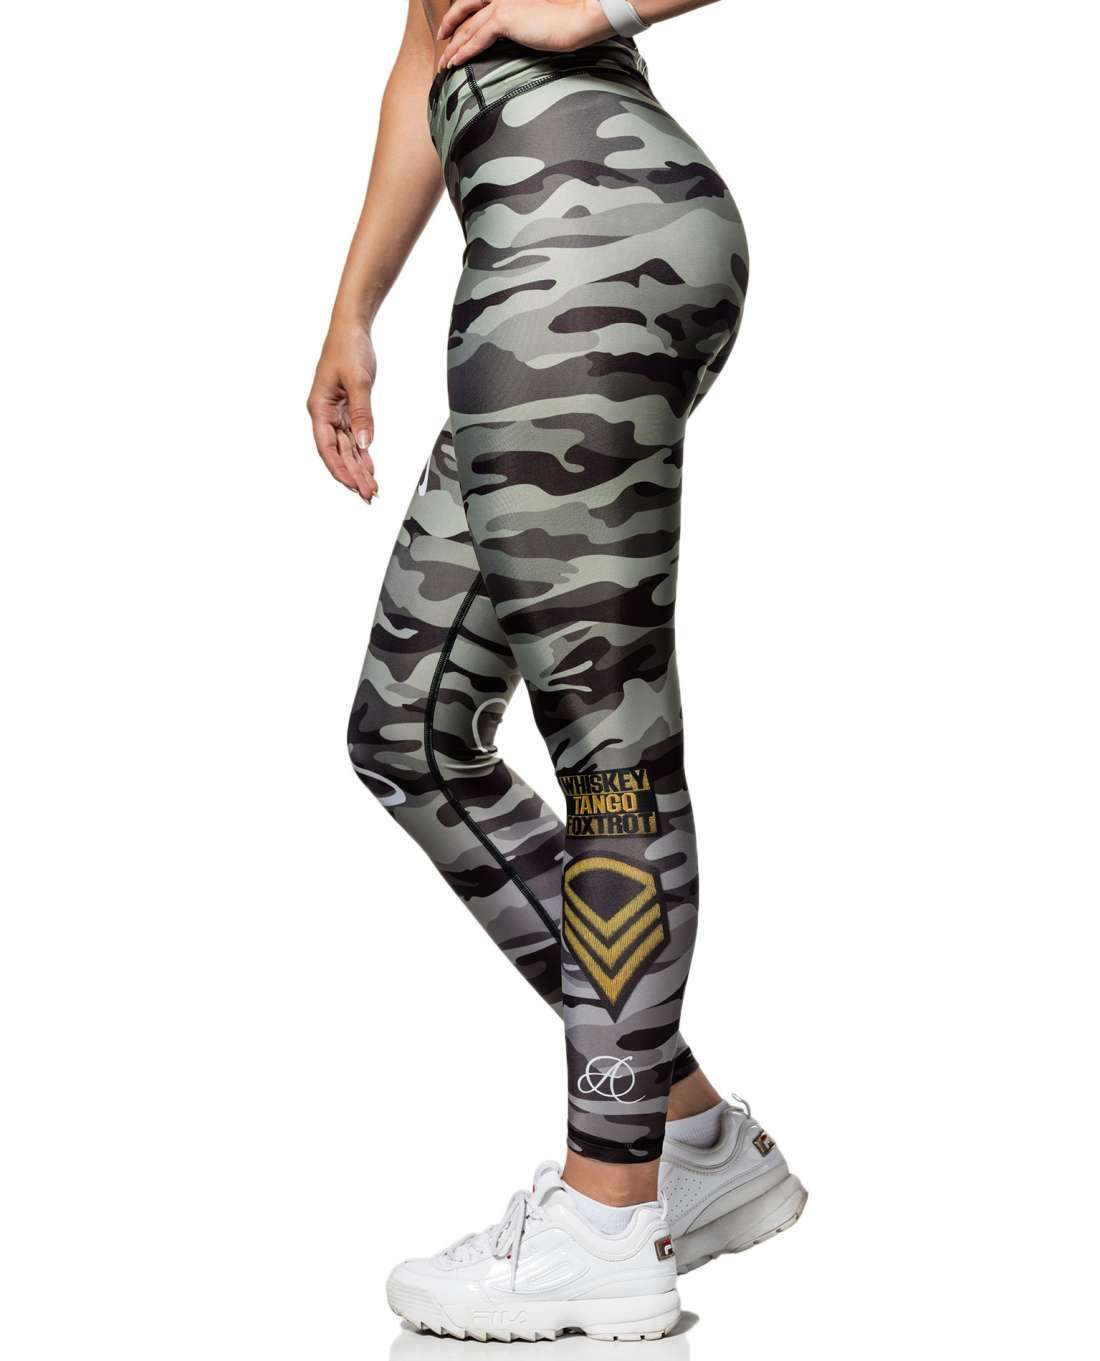 Commando Legging Anarchy Apparel